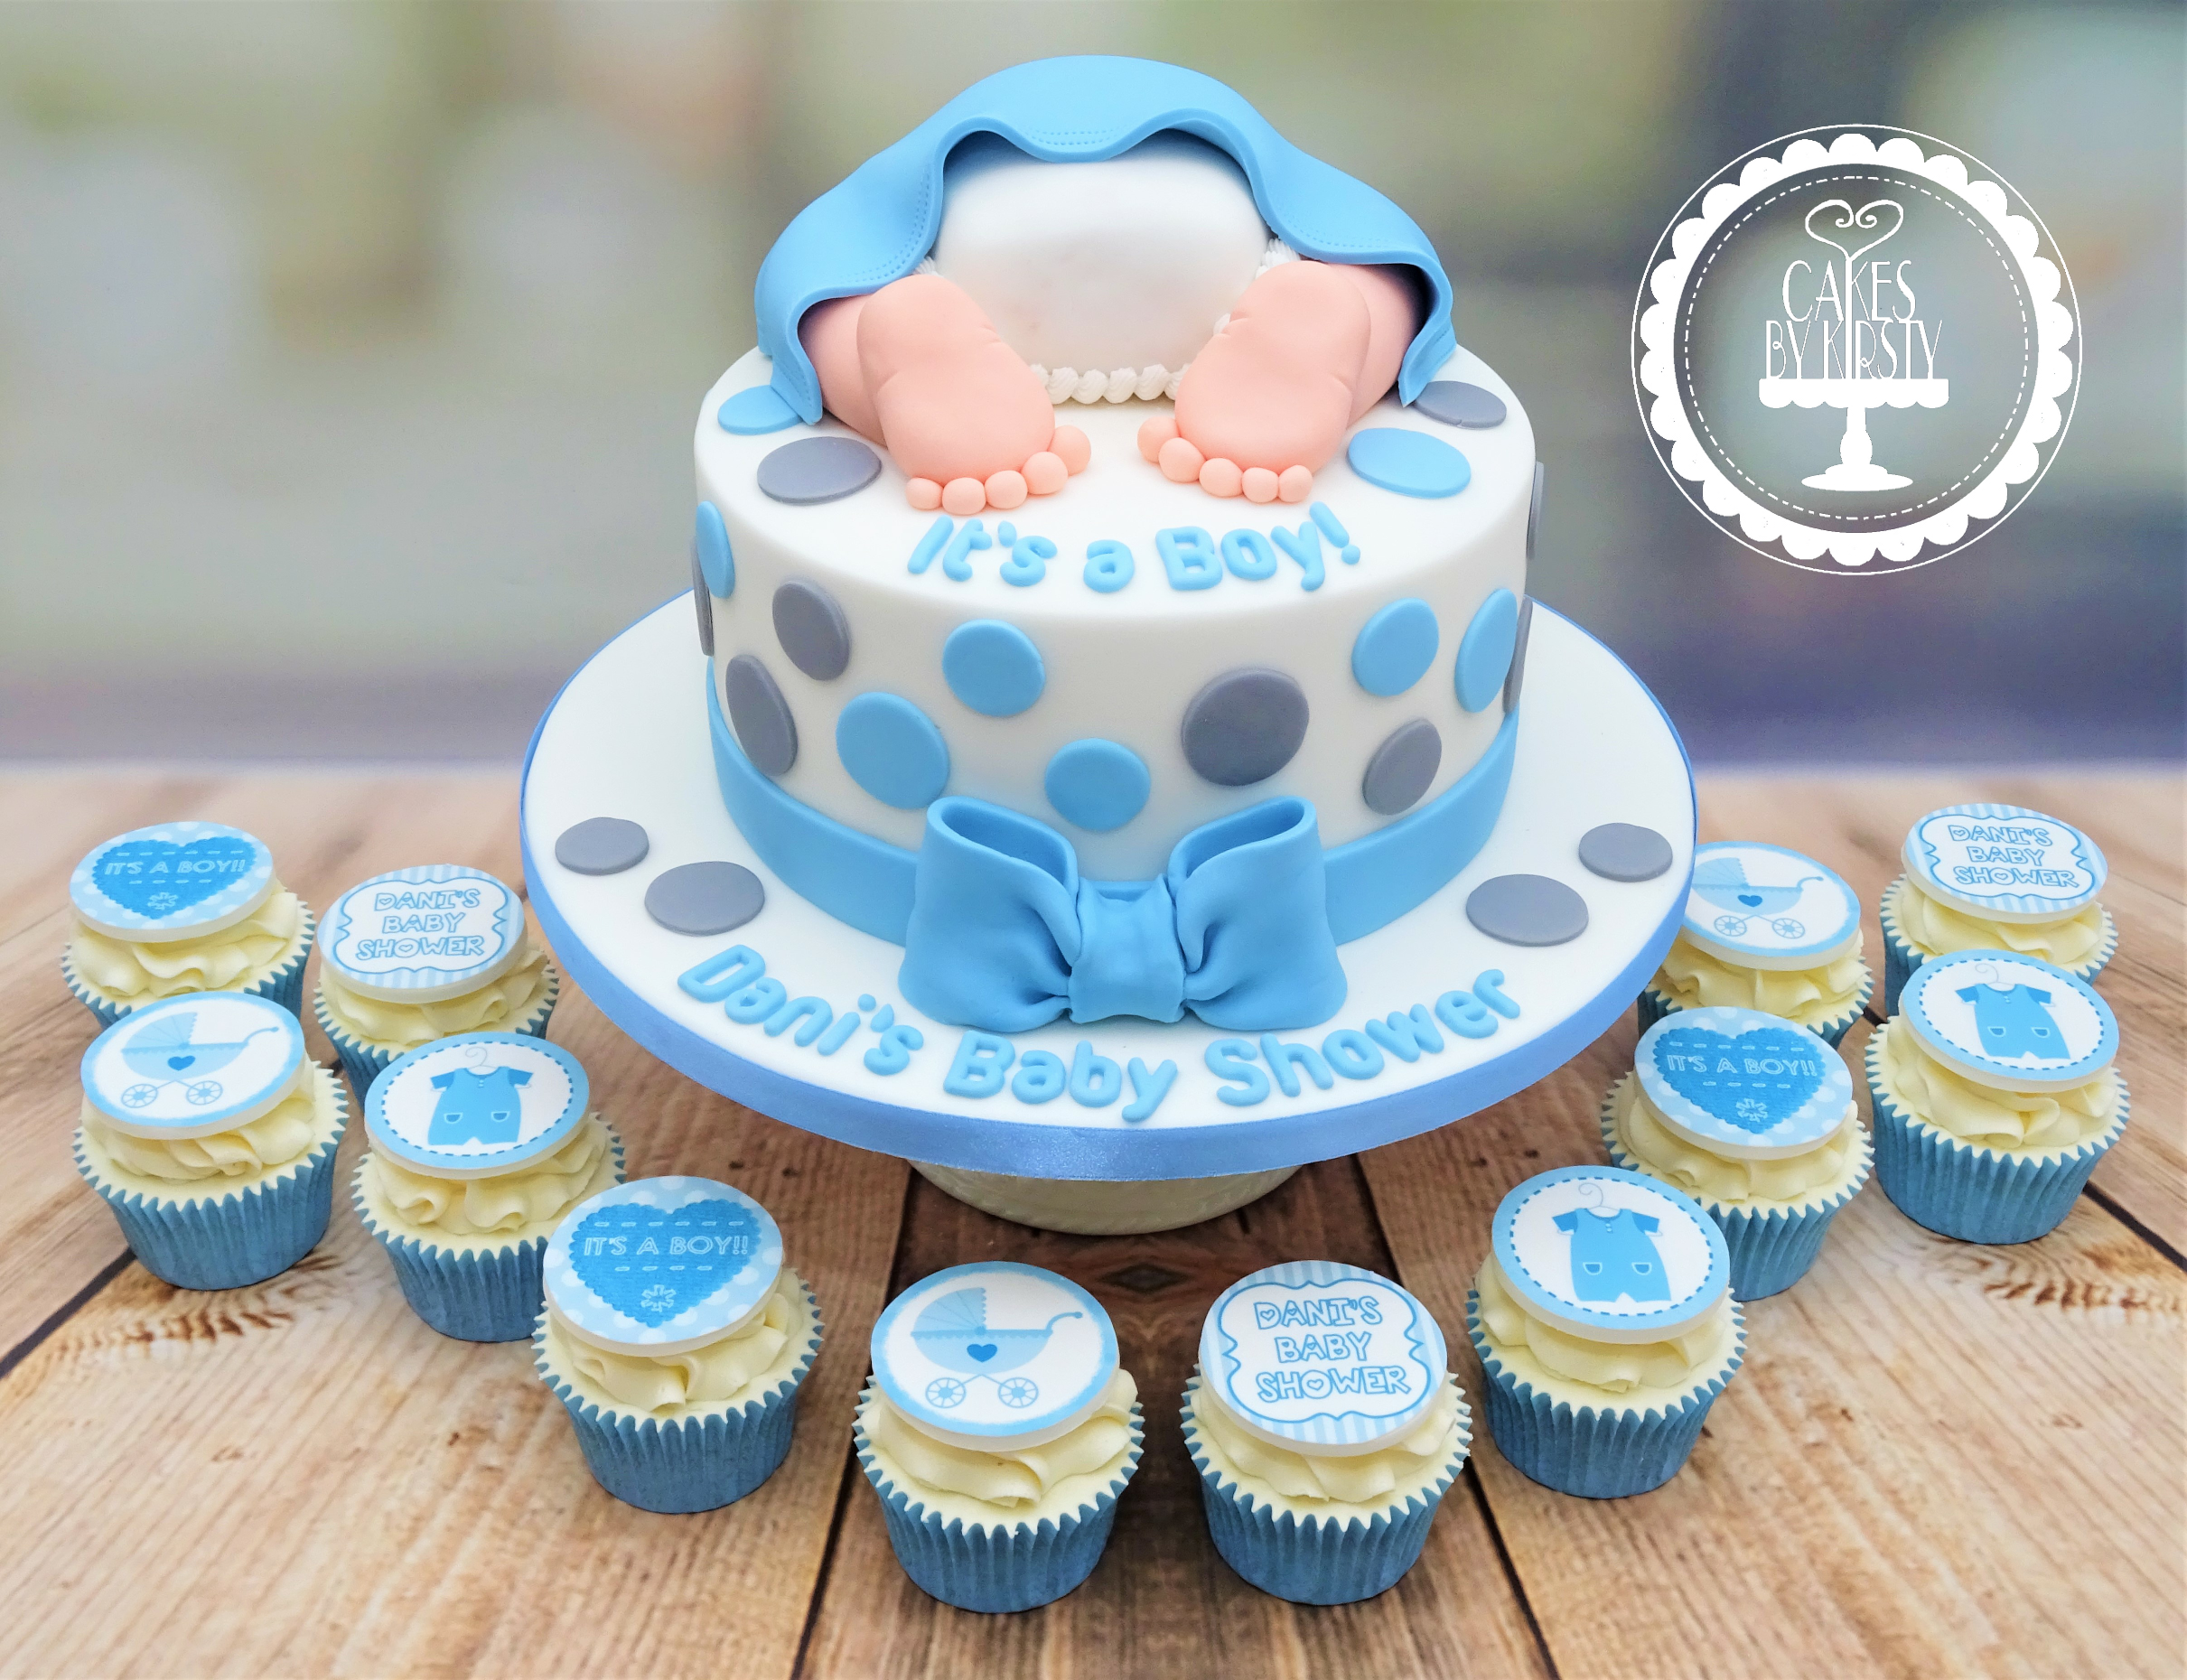 It's A Boy, Baby Bum, Baby Shower Cake &